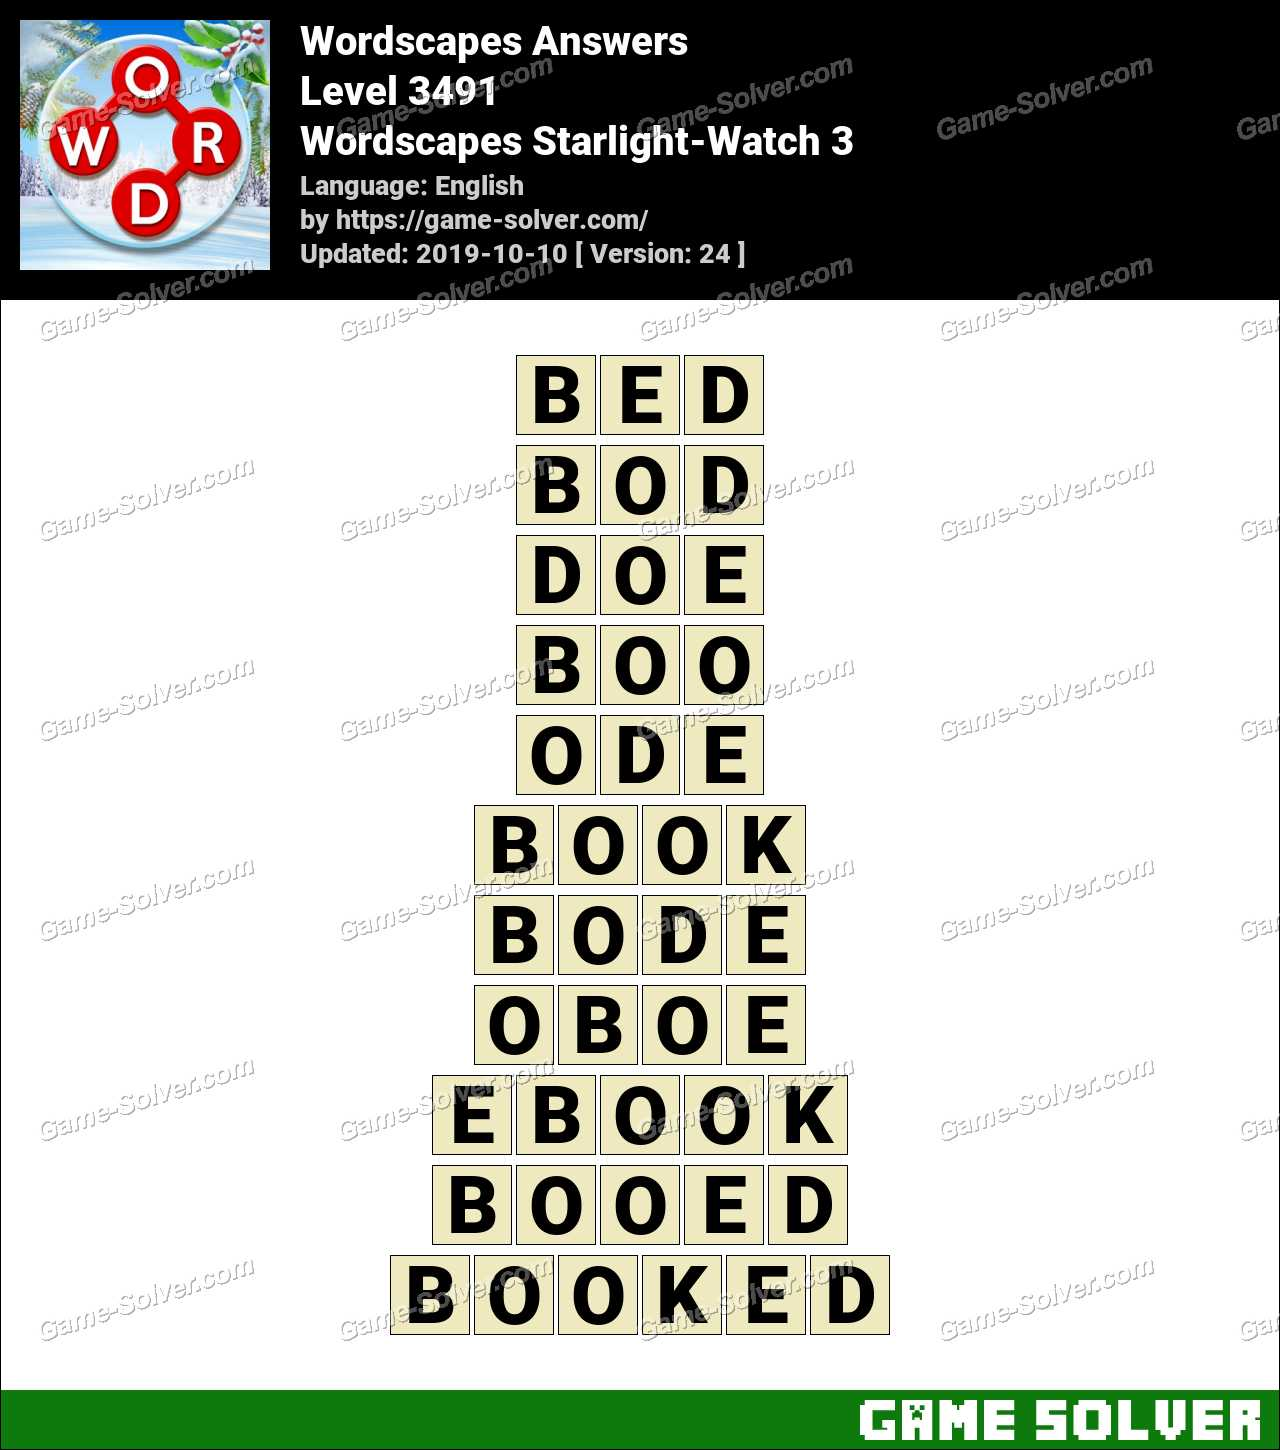 Wordscapes Starlight-Watch 3 Answers